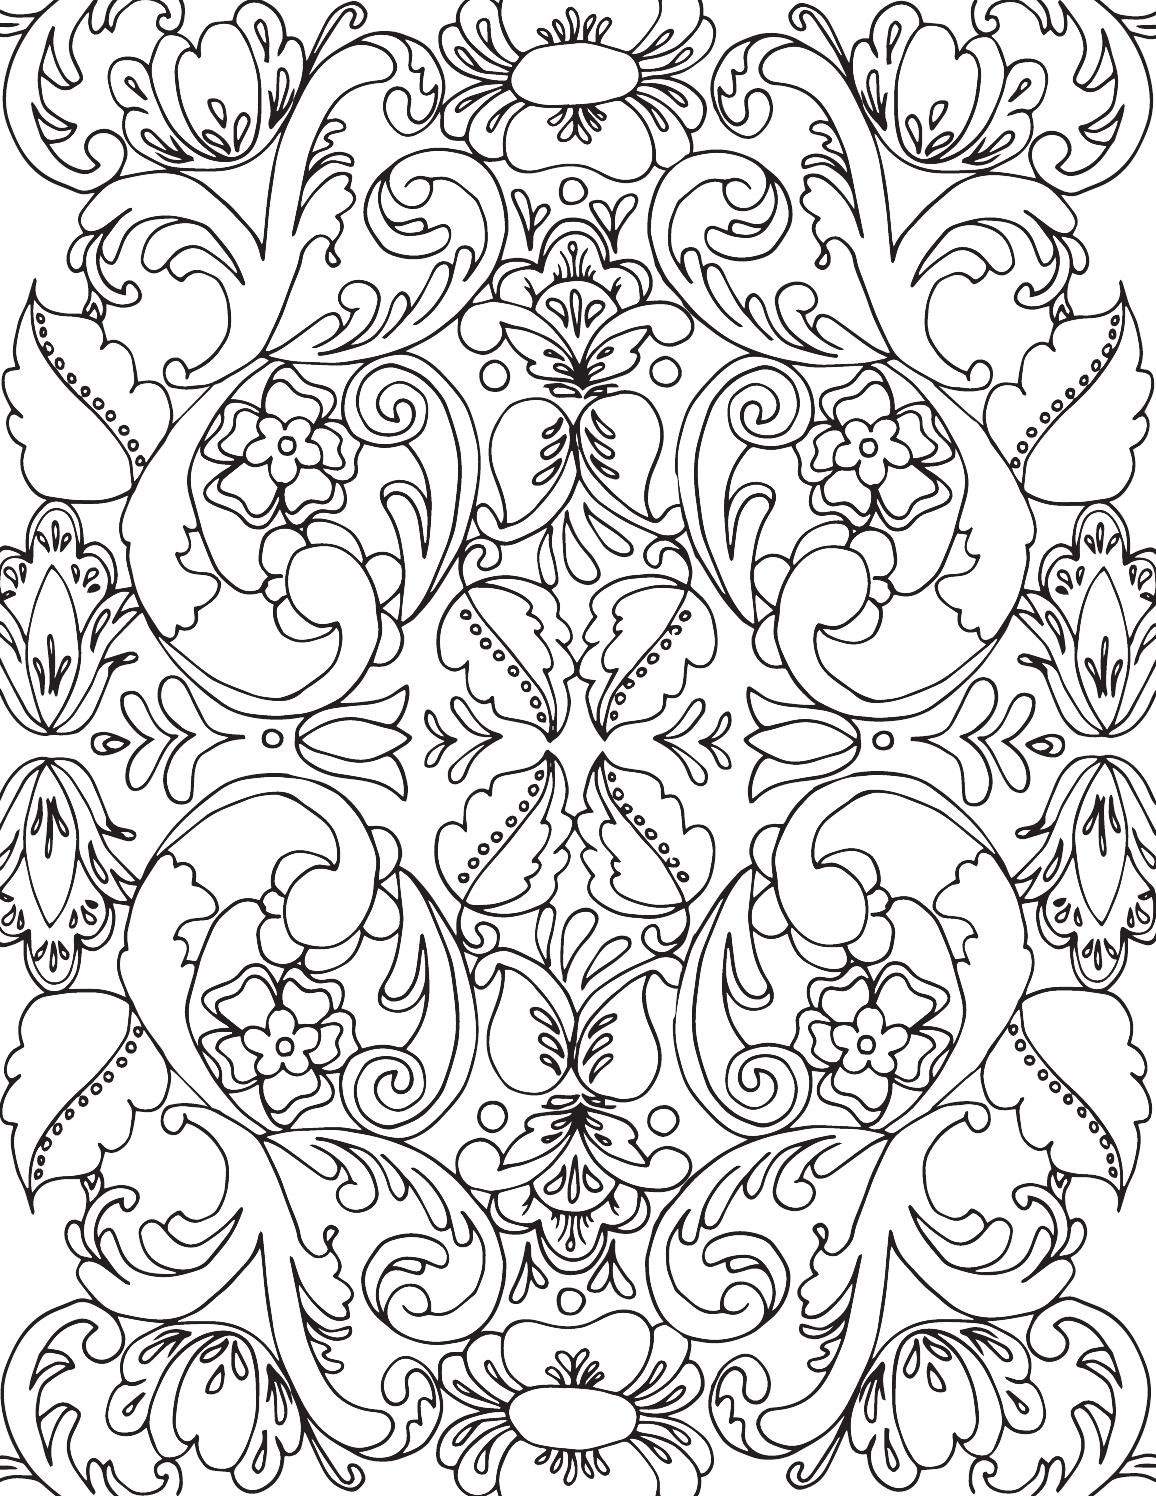 Rosemaling Coloring Book1 Coloring Books Coloring Pages Printable Coloring Pages